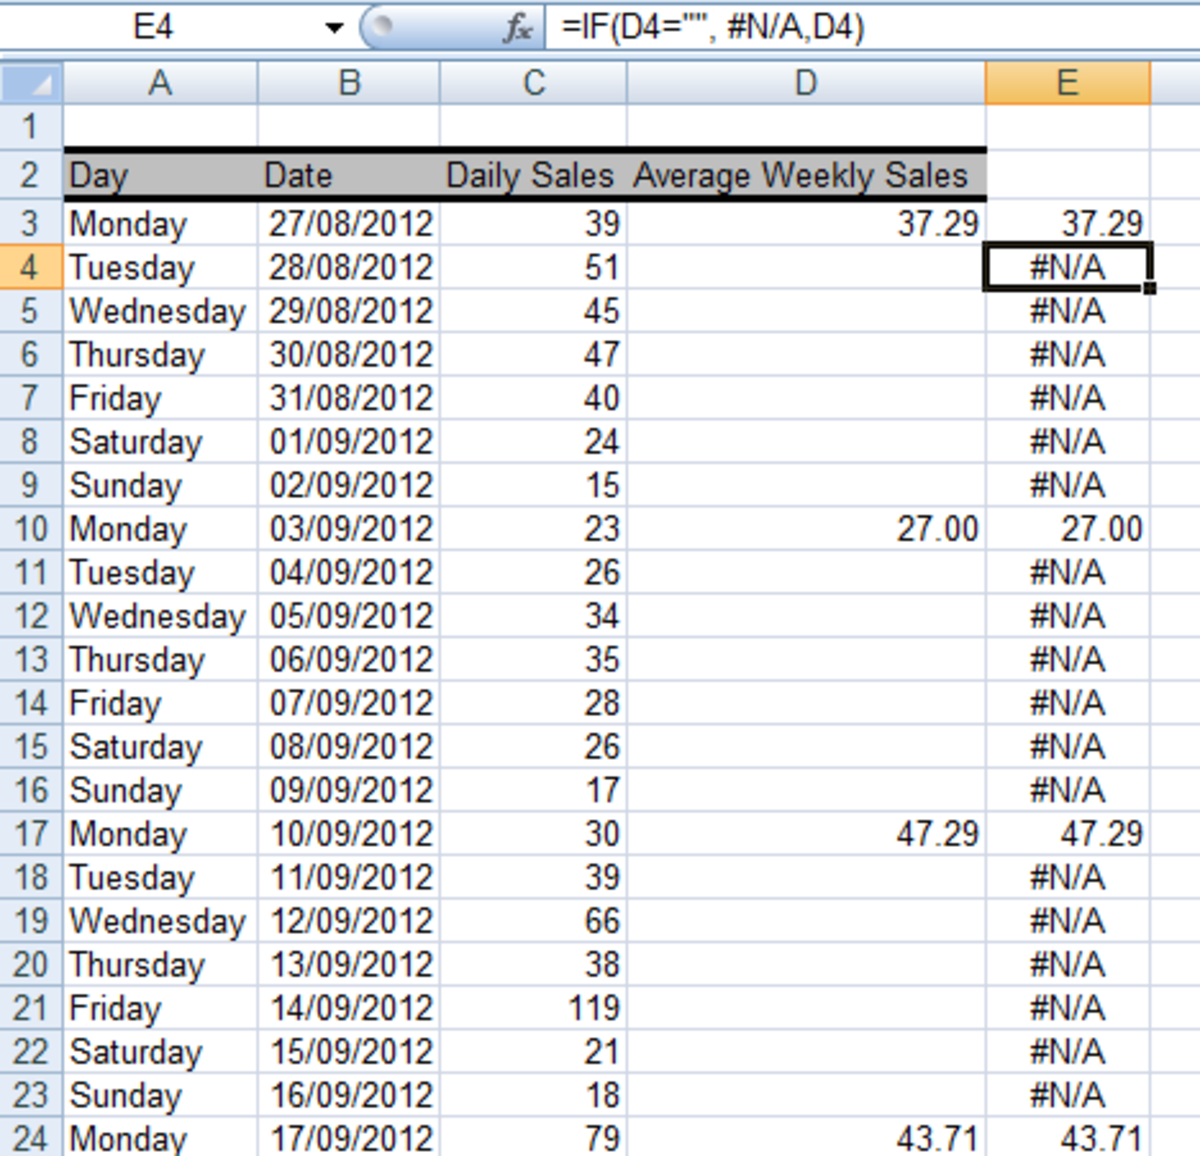 Ediblewildsus  Wonderful How To Get Excel  And  To Ignore Empty Cells In A Chart Or  With Gorgeous Using The If Function In A Formula To Convert Empty Cells To Na With Alluring Excel Thermometer Chart Also Excel Graph Tutorial In Addition Excel Enery And Calculate Number Of Days Between Dates Excel As Well As Excel Energy Stock Additionally Shapiro Wilk Test Excel From Turbofuturecom With Ediblewildsus  Gorgeous How To Get Excel  And  To Ignore Empty Cells In A Chart Or  With Alluring Using The If Function In A Formula To Convert Empty Cells To Na And Wonderful Excel Thermometer Chart Also Excel Graph Tutorial In Addition Excel Enery From Turbofuturecom